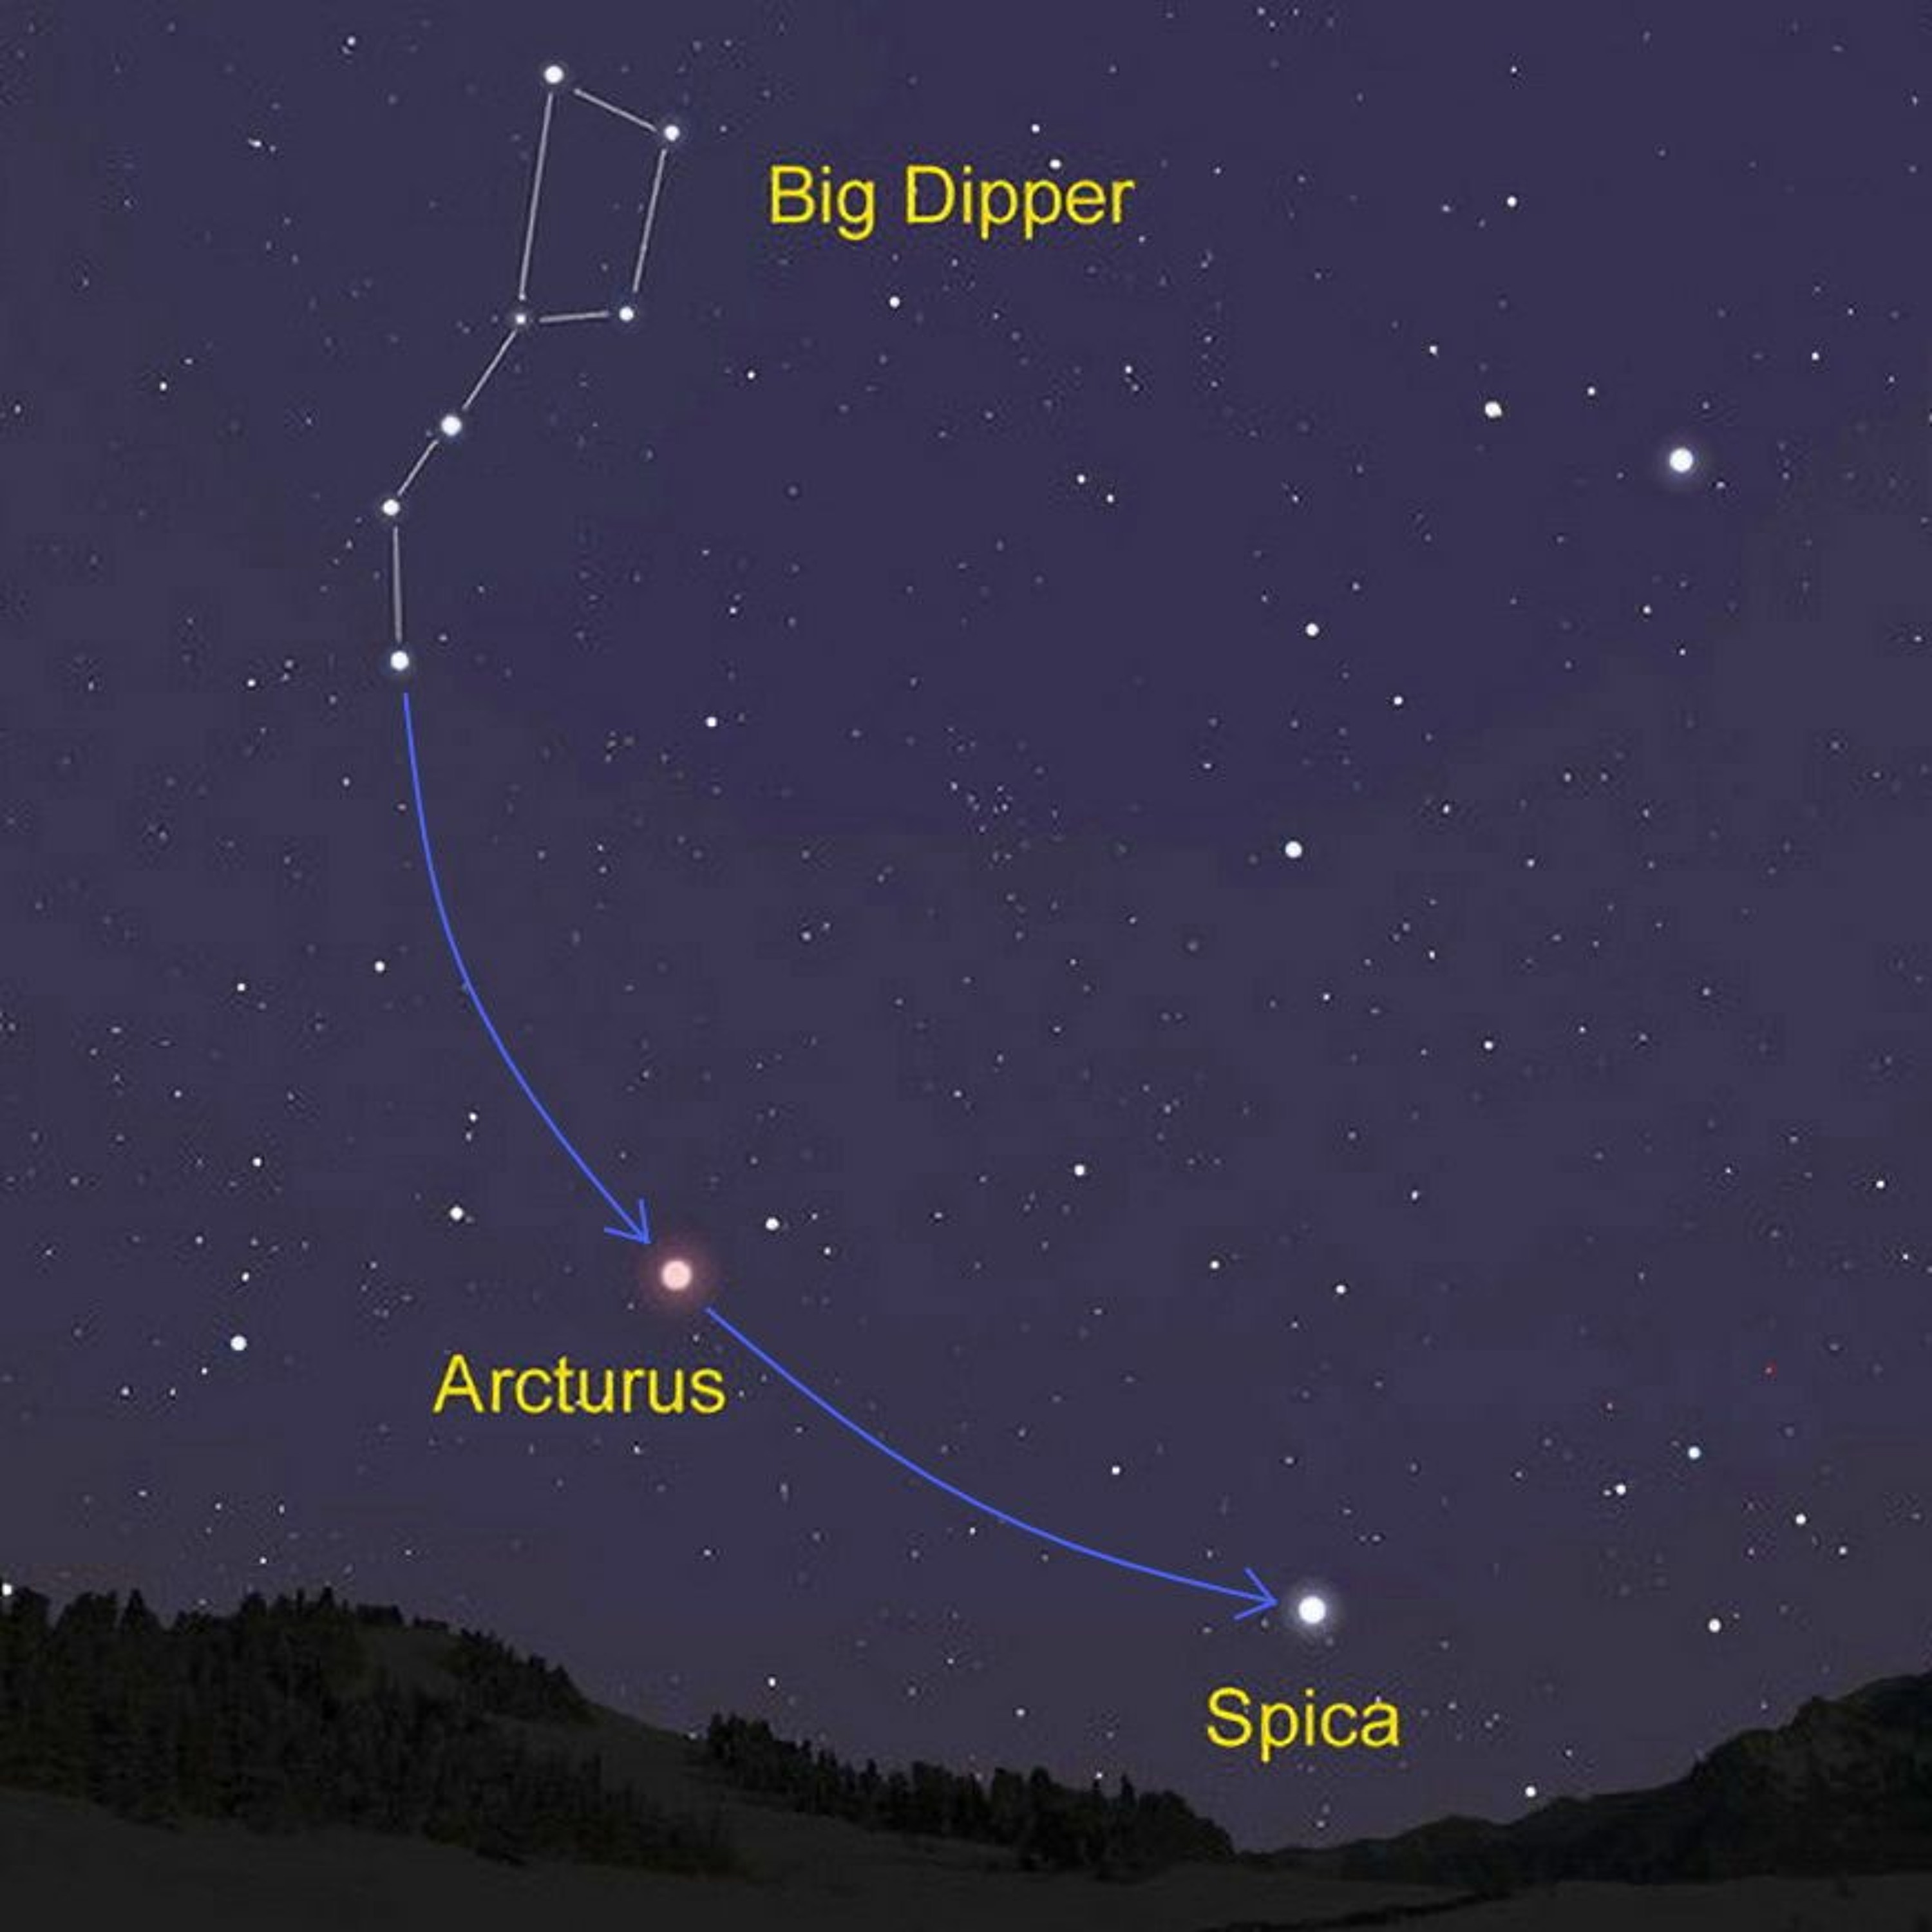 5/10/21 - Arc to Arcturus, Spike to Spica